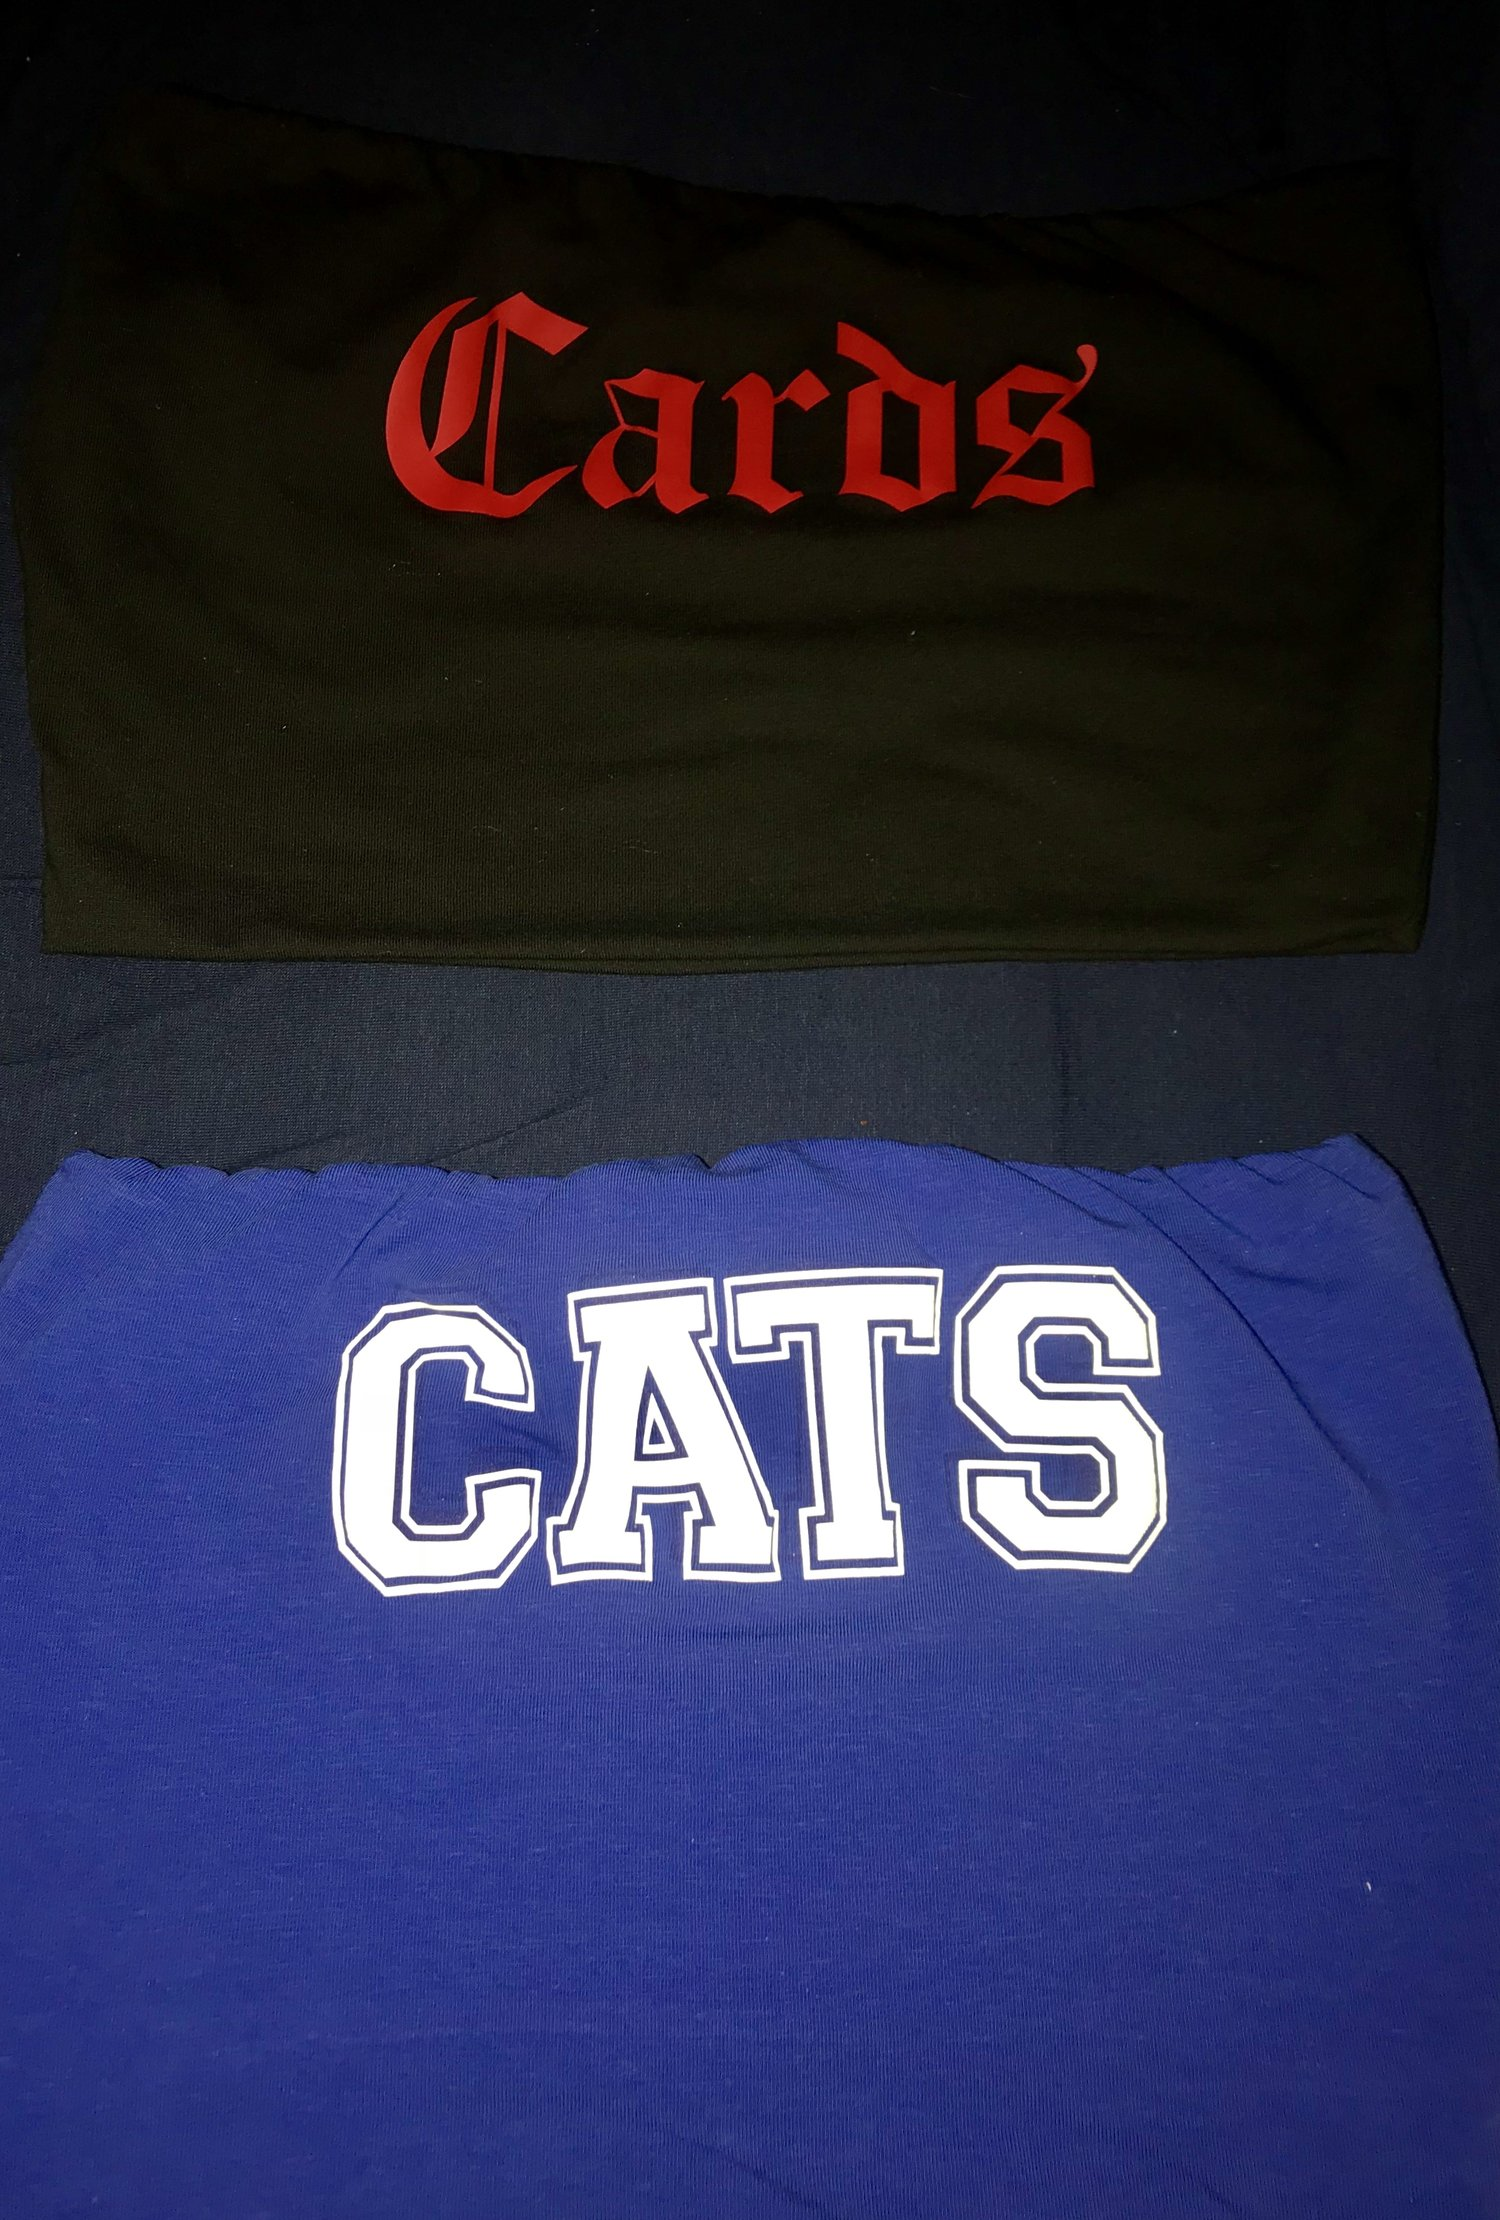 Cards - Cats Tube Top